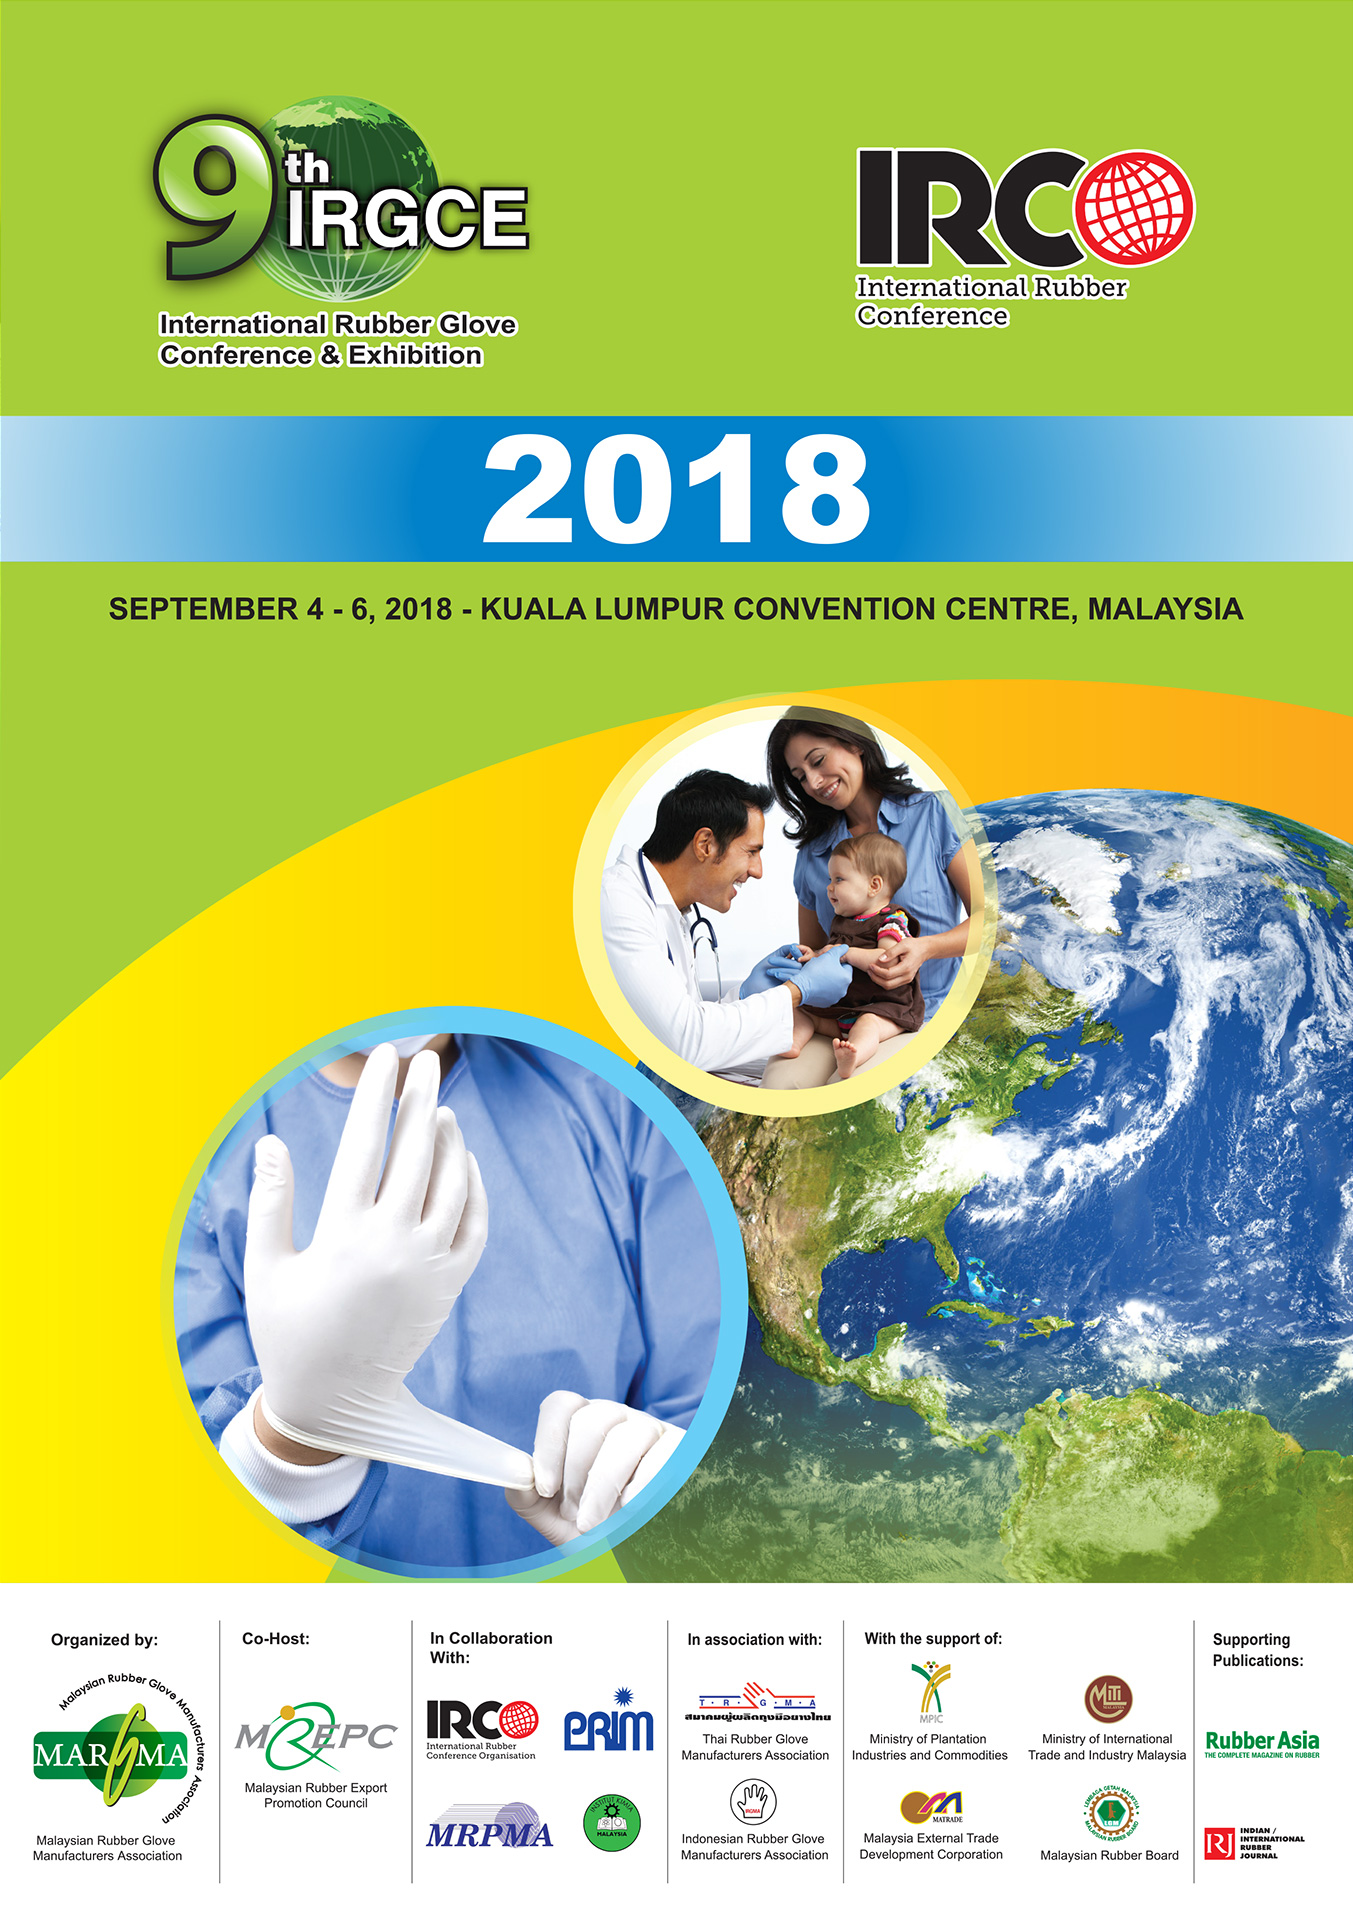 9th International Rubber Glove Conference and Exhibition